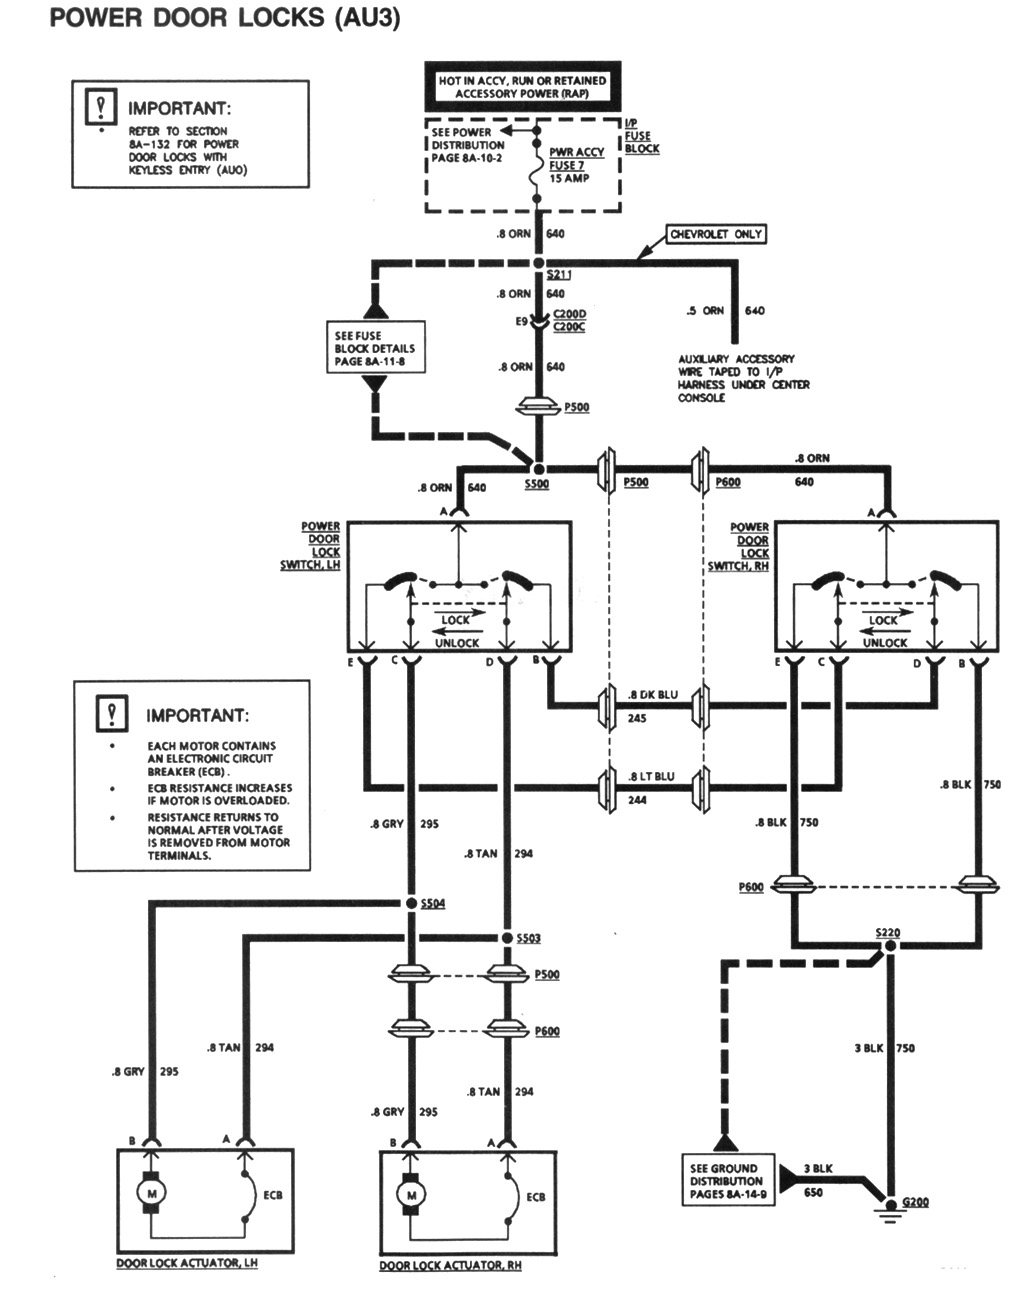 pwr_dr_lock_schematic 4th gen lt1 f body tech aids 2007 malibu door lock switch wiring diagram at virtualis.co